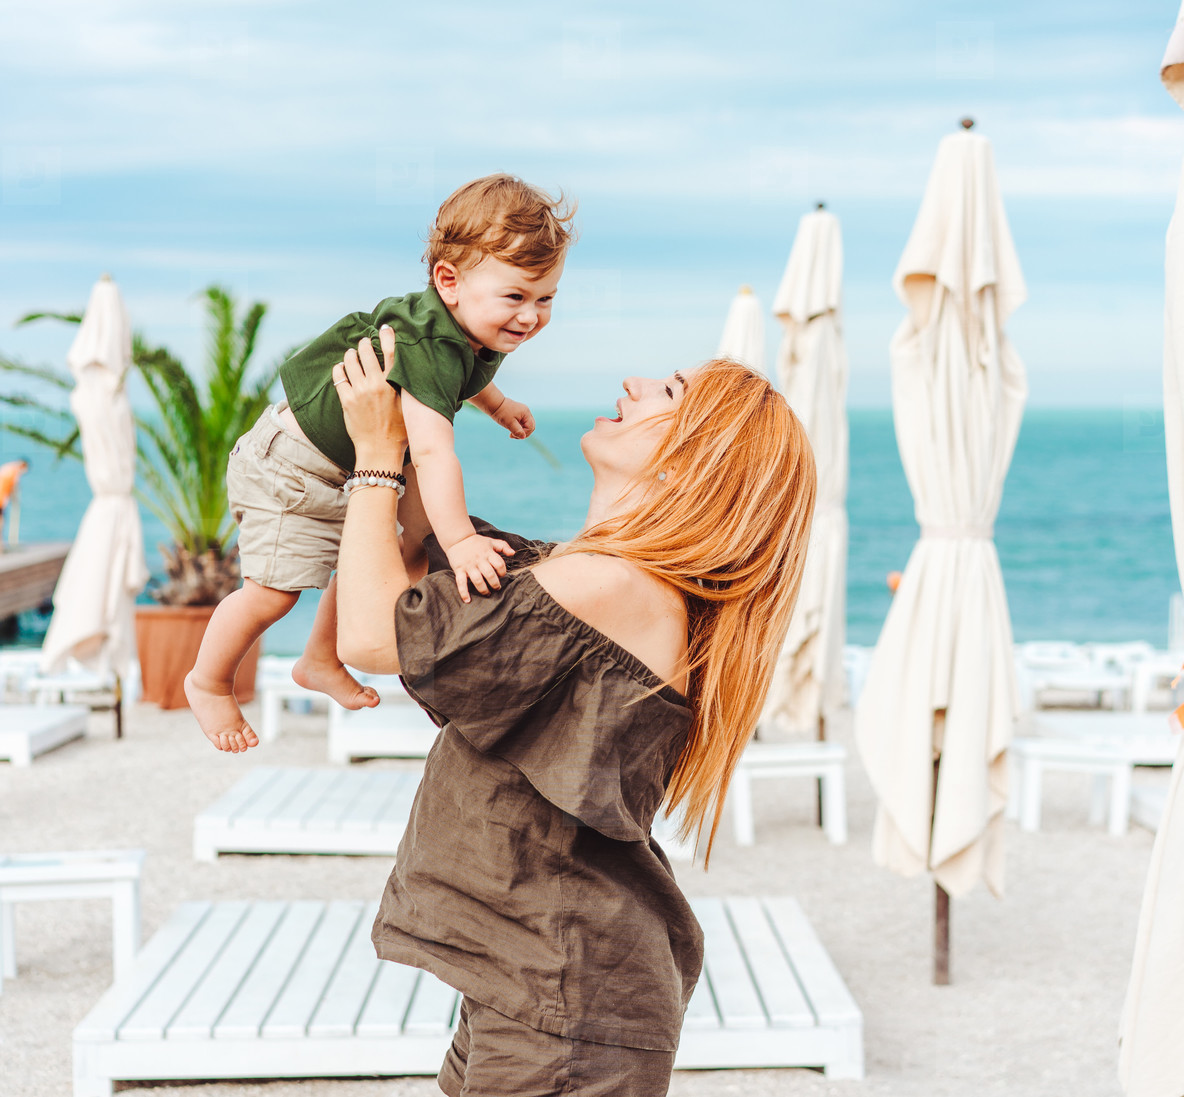 Mom and her little son on the beach  on vacation